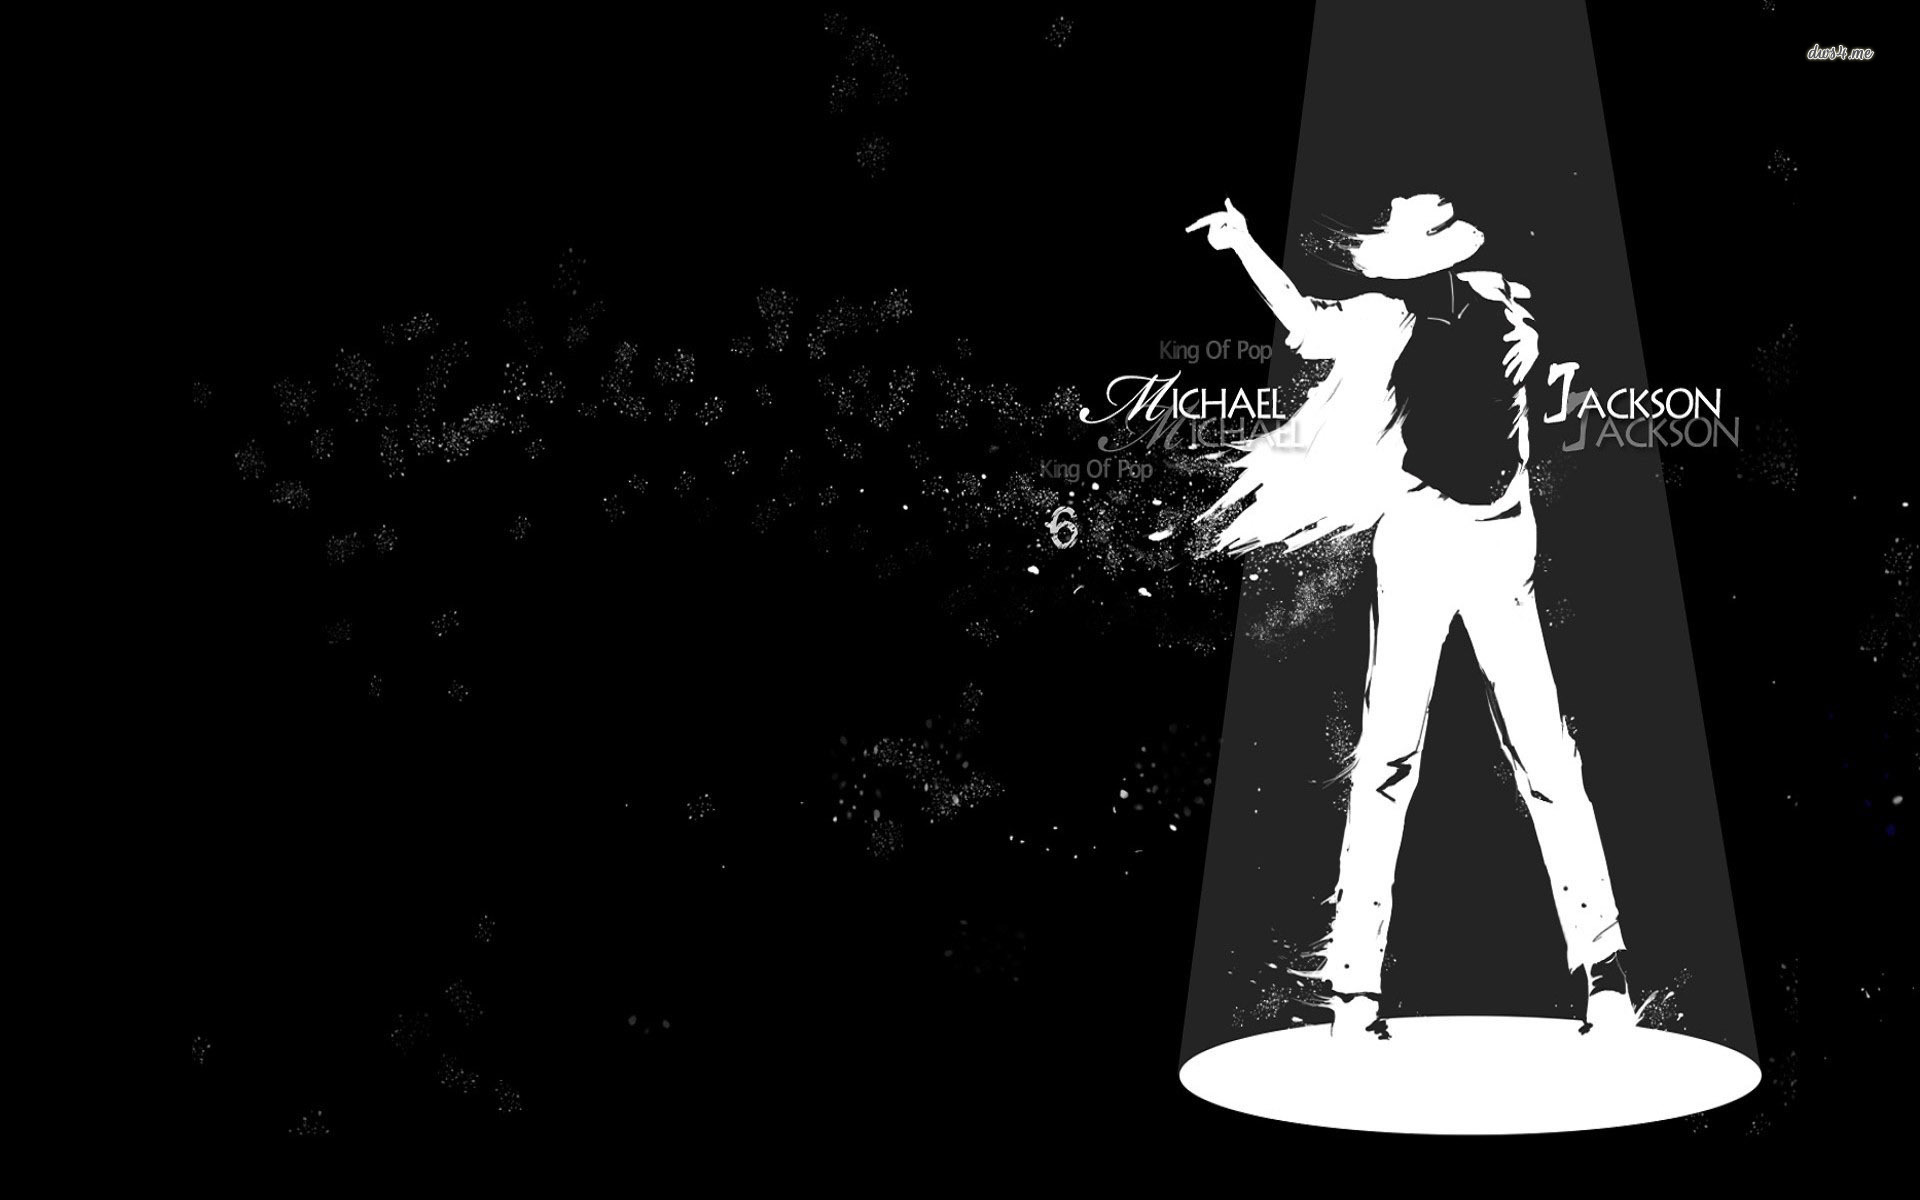 Michael Jackson Wallpapers HD A18